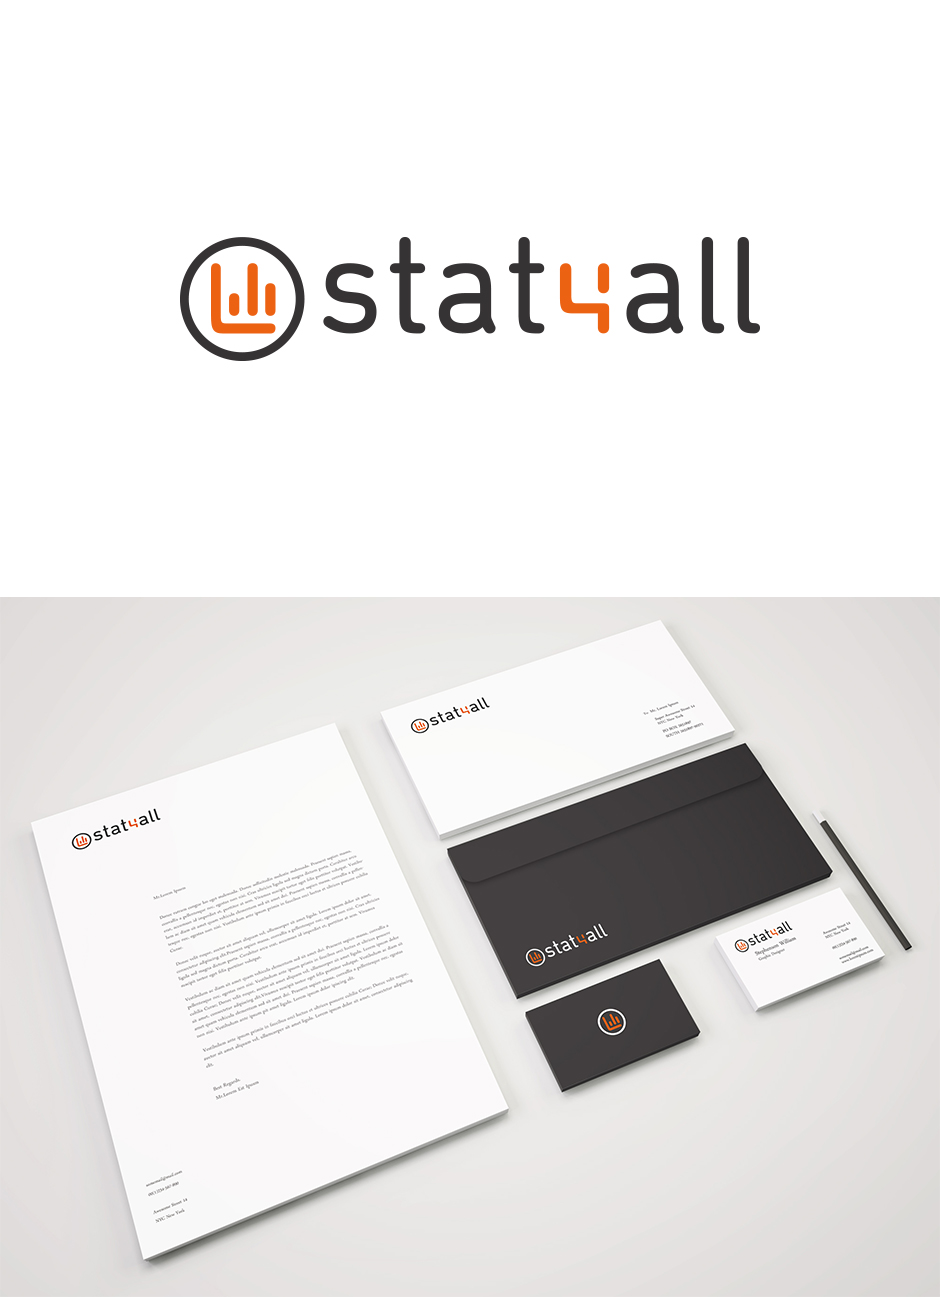 Logo_stat4all